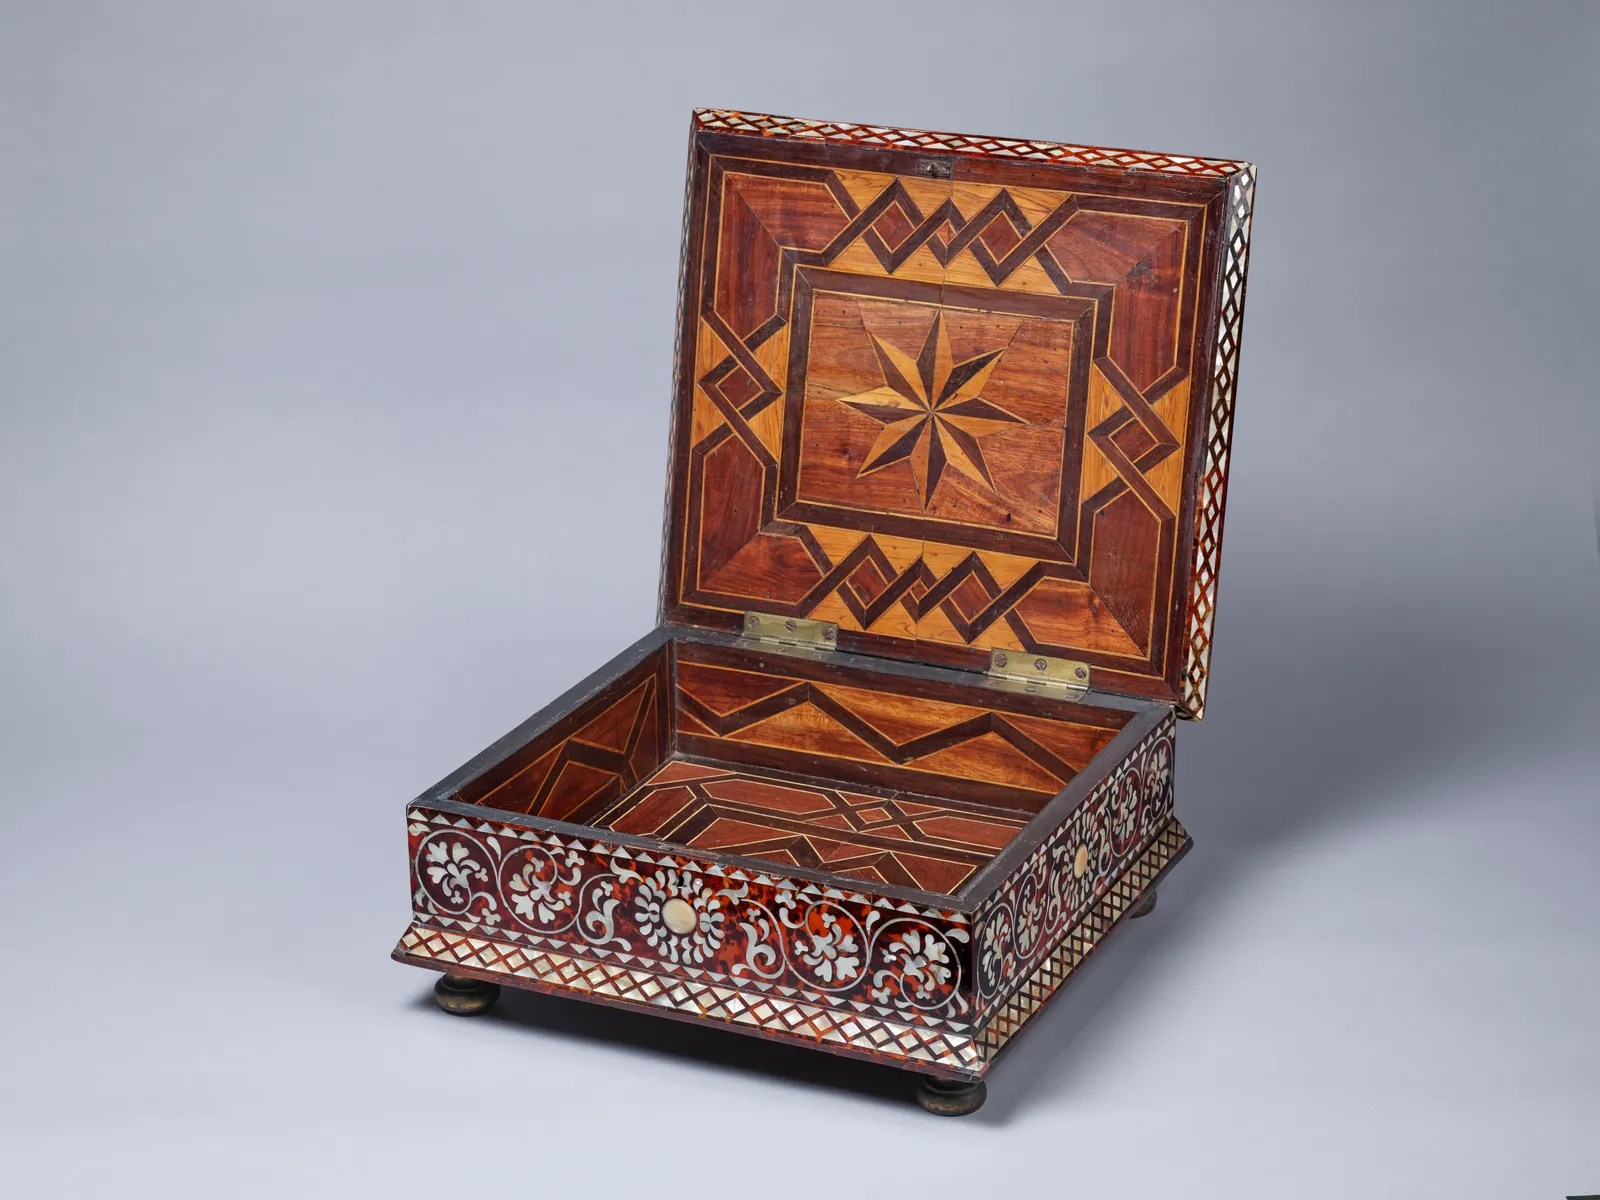 An early 1700s Peruvian box that is partial to.